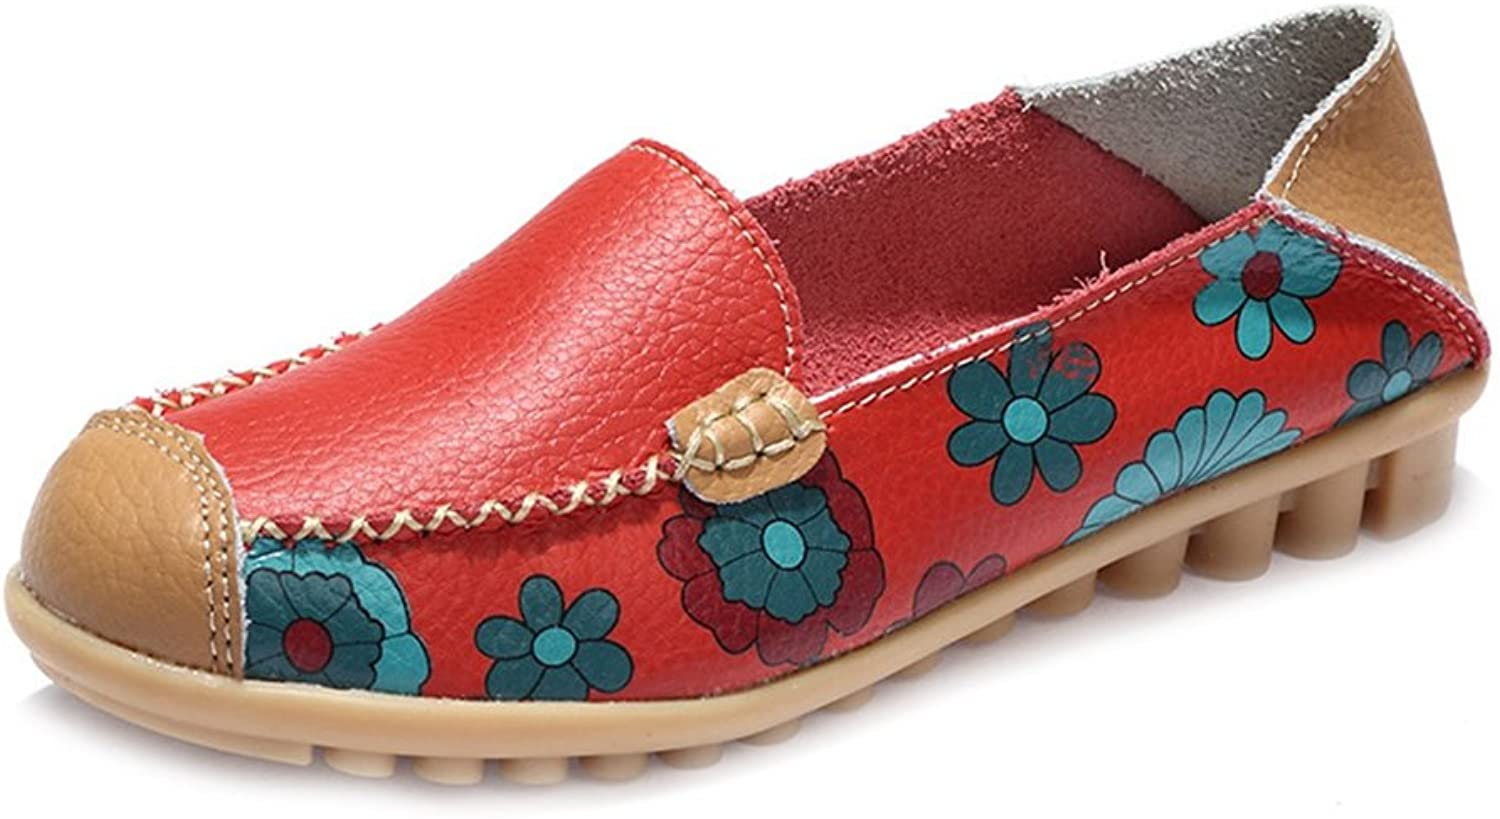 T-JULY Women's Penny Loafers shoes Flowers Printing Soft Comfy Boat Moccasin Flat shoes